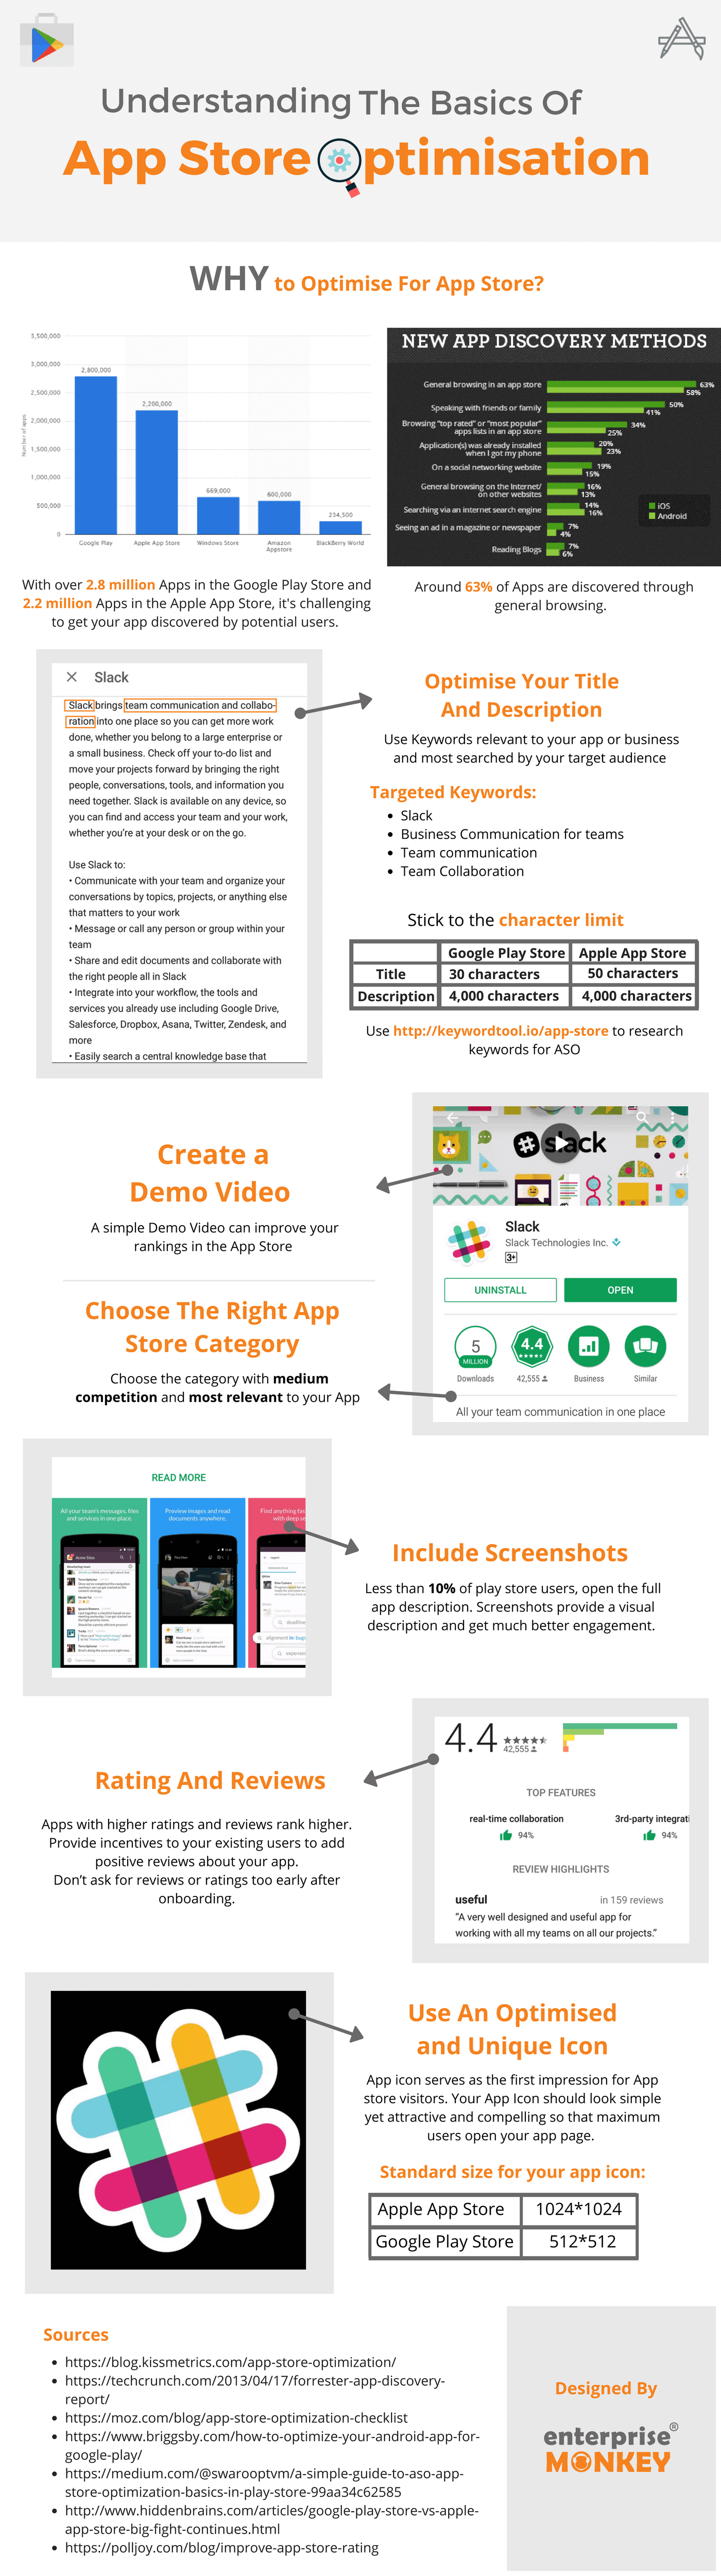 App store optimisation infographic